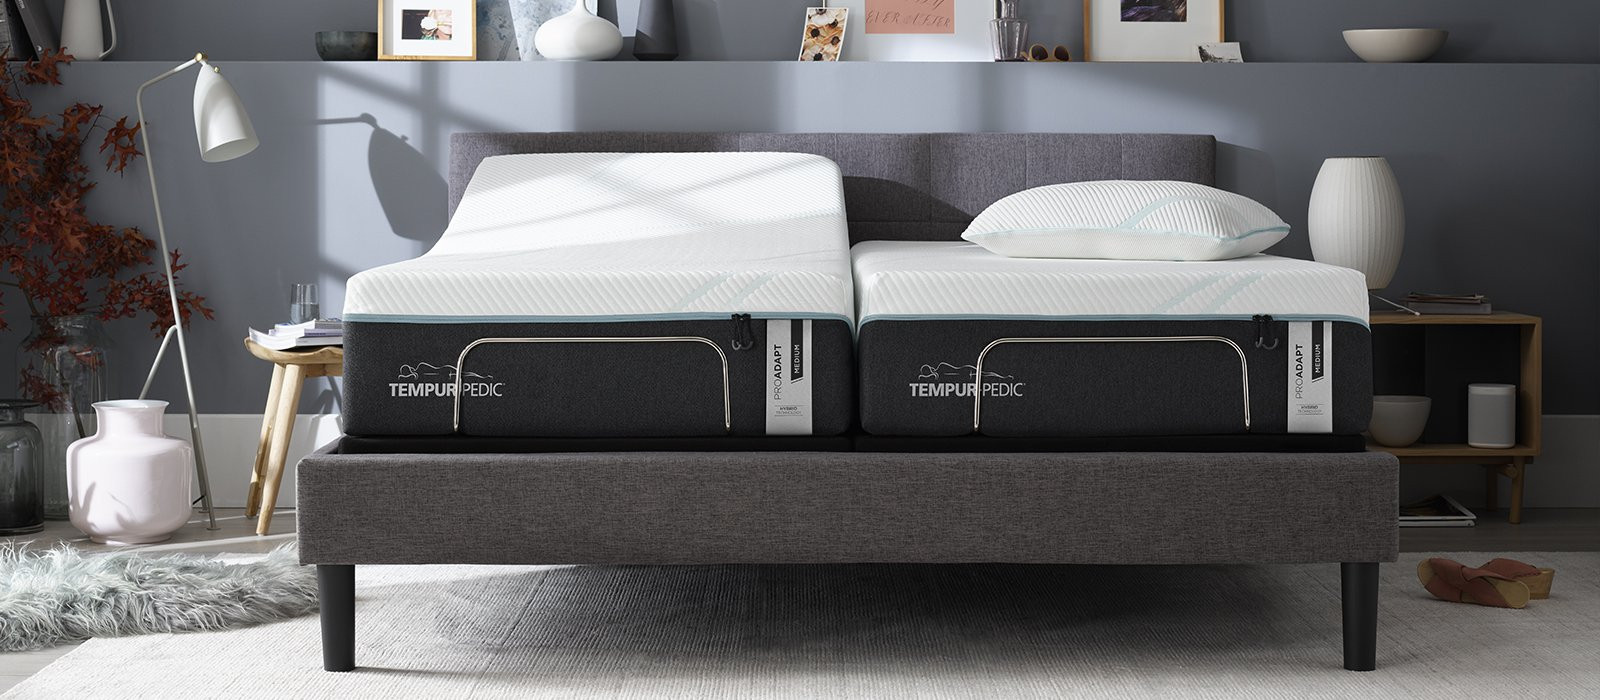 Pro-Adapt Medium Hybrid Queen Mattress